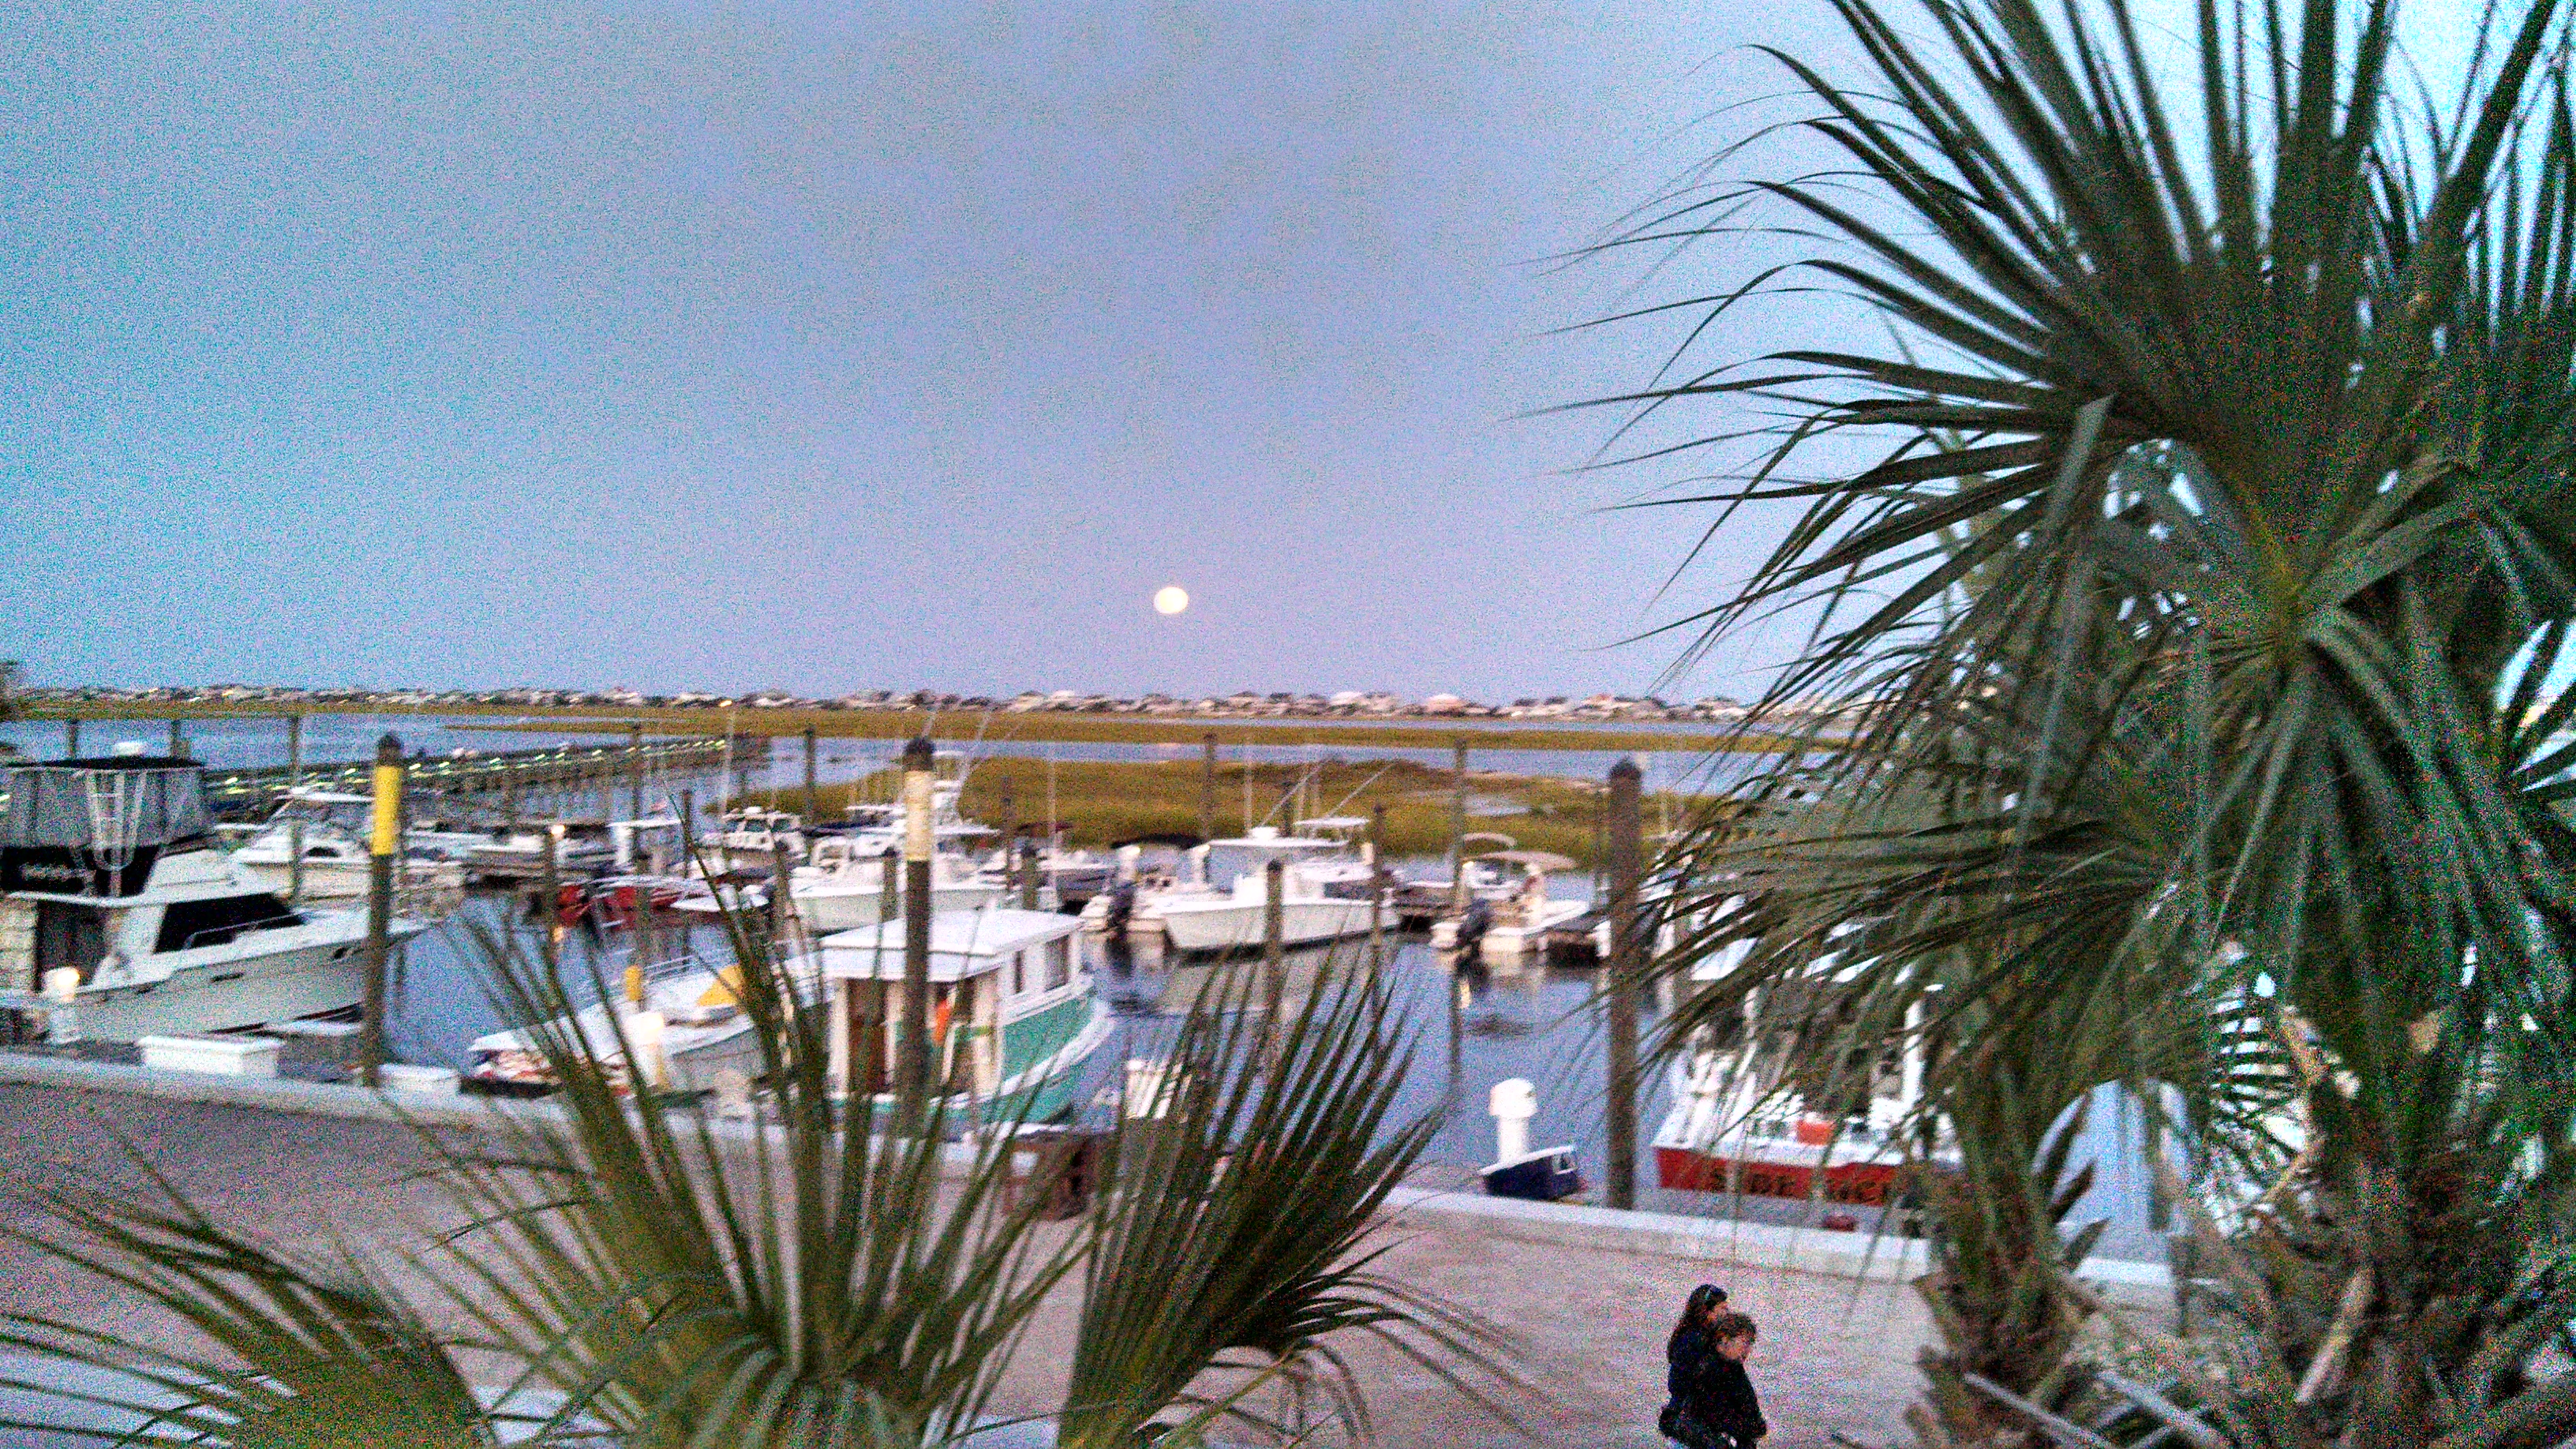 Beautiful view of the moon during dinner at Murrell's Inlet, SC.